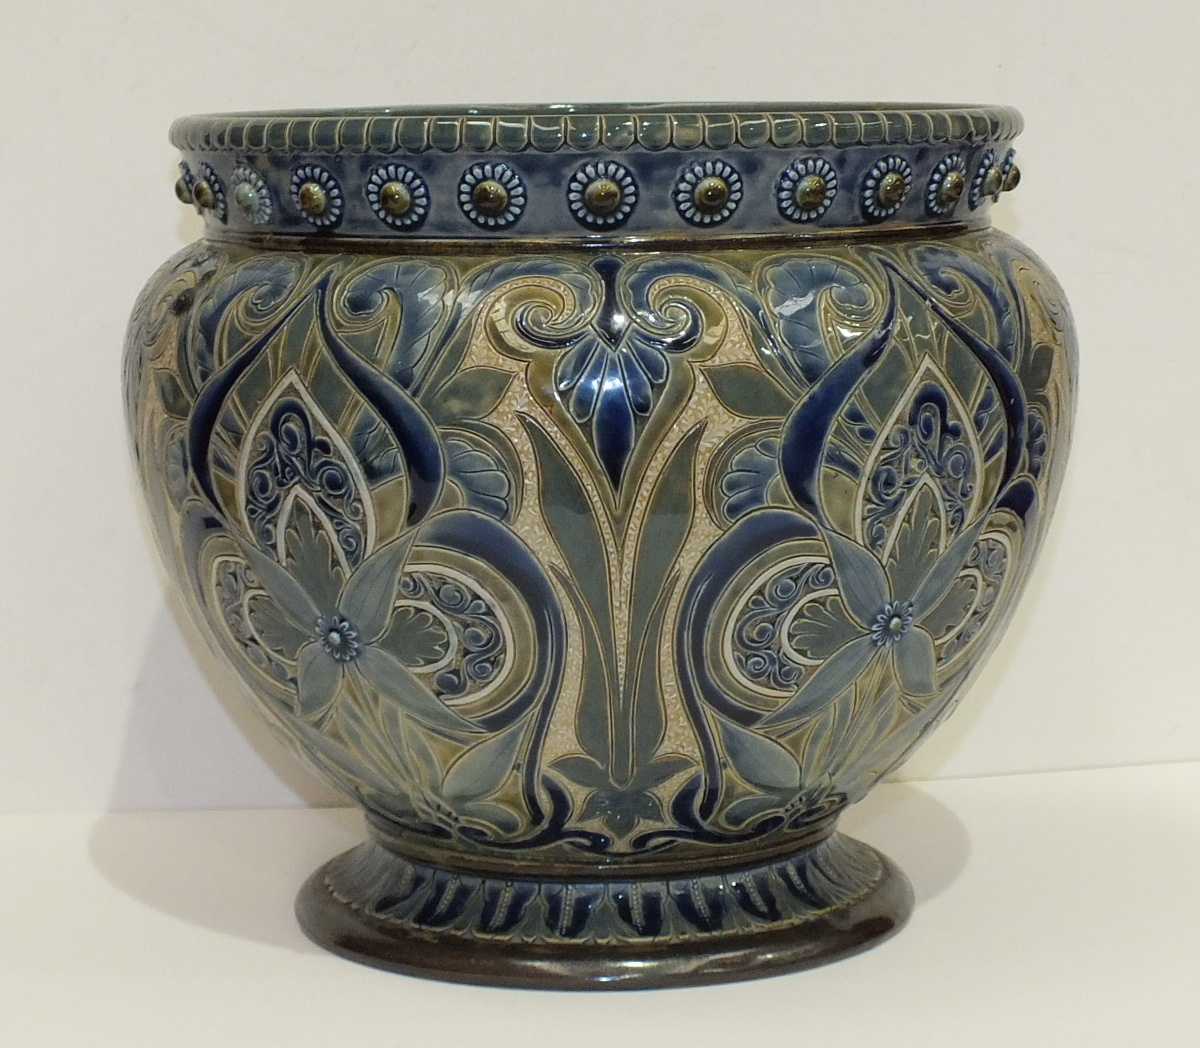 Lot 116 - A Doulton Lambeth stoneware jardinière by Edith D Lupton, dated 1881, with overall blue stylised